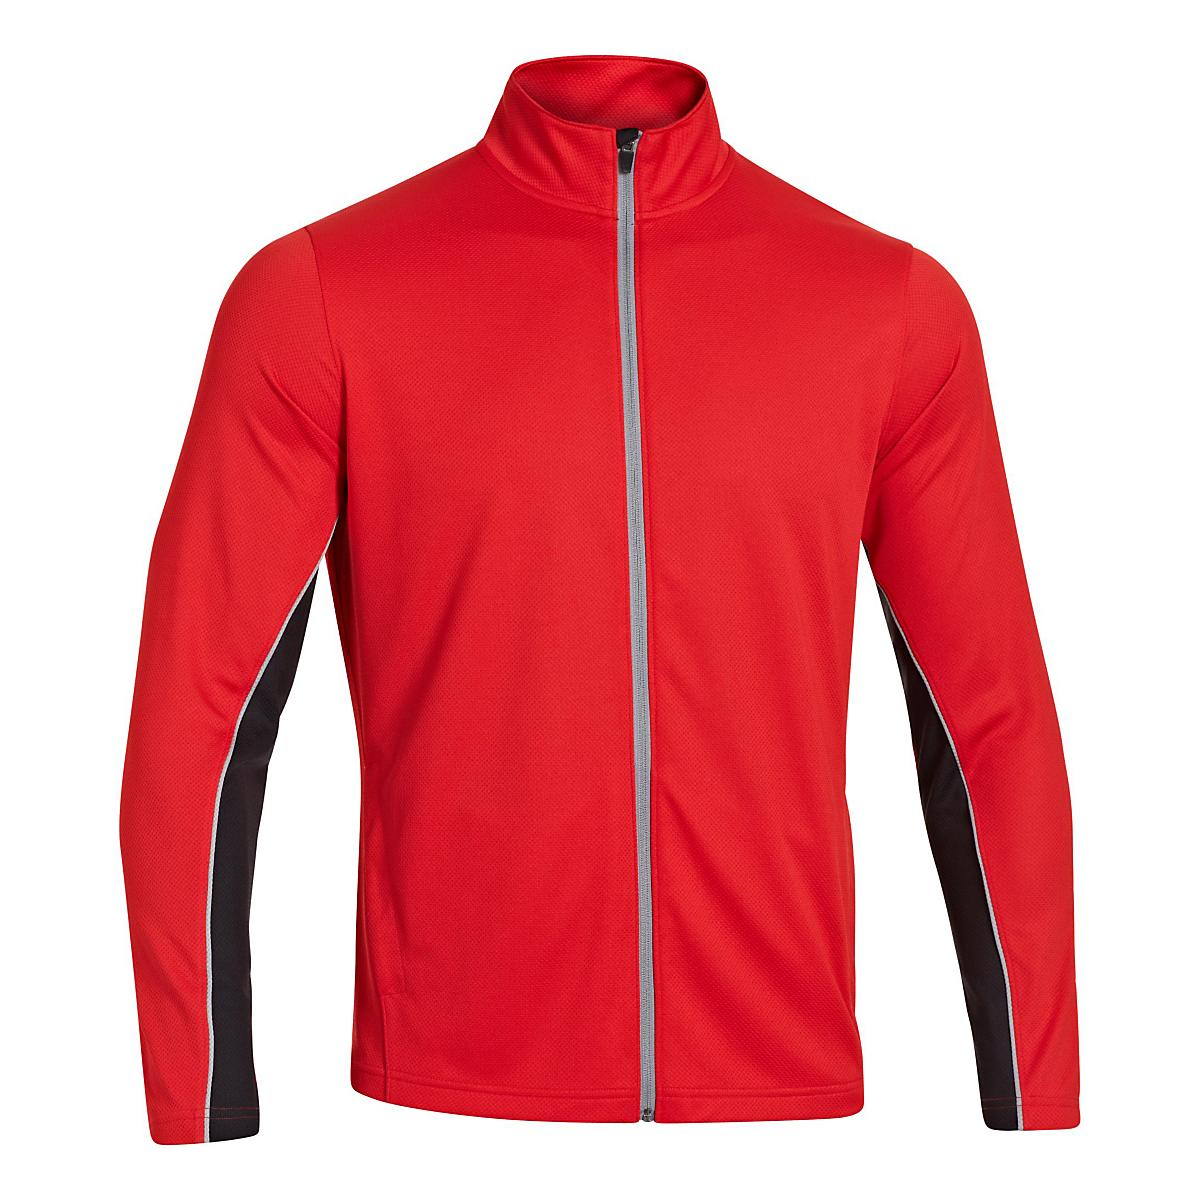 Men's Under Armour�Reflex Warm-Up Jacket